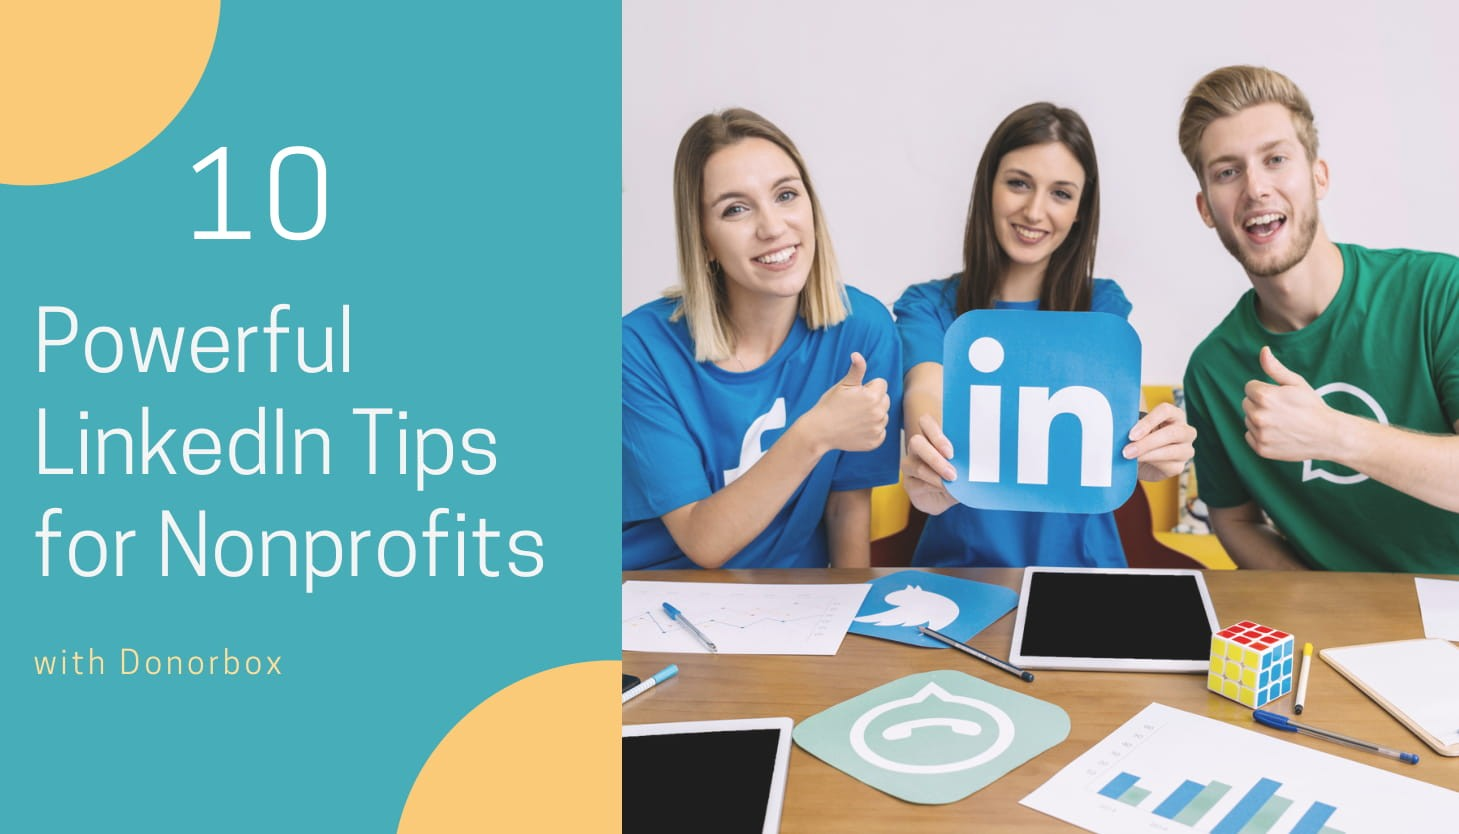 10 Powerful LinkedIn Tips for Nonprofits | Donorbox